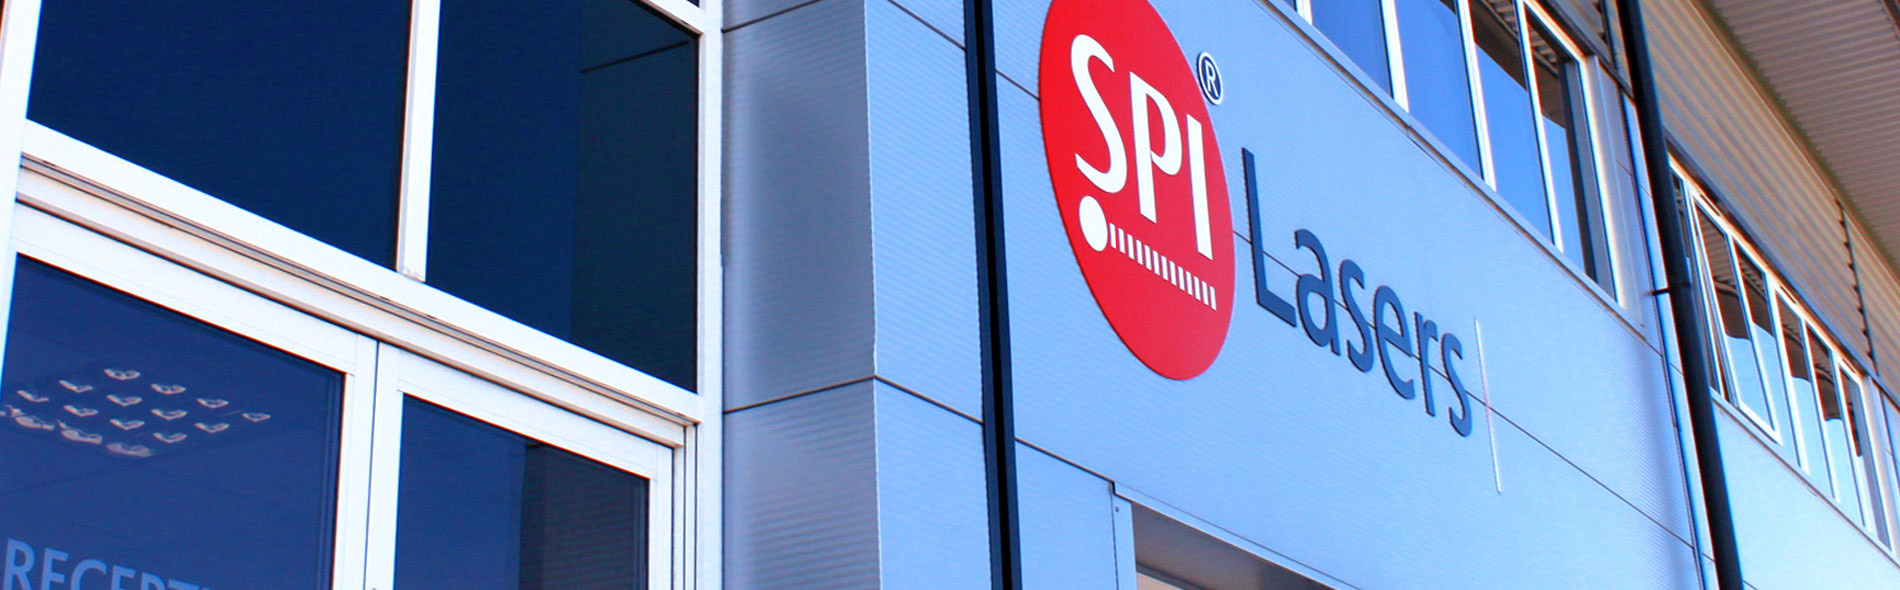 Press Release – SPI Lasers appoints Sales Manager for Italy & Southern Europe.